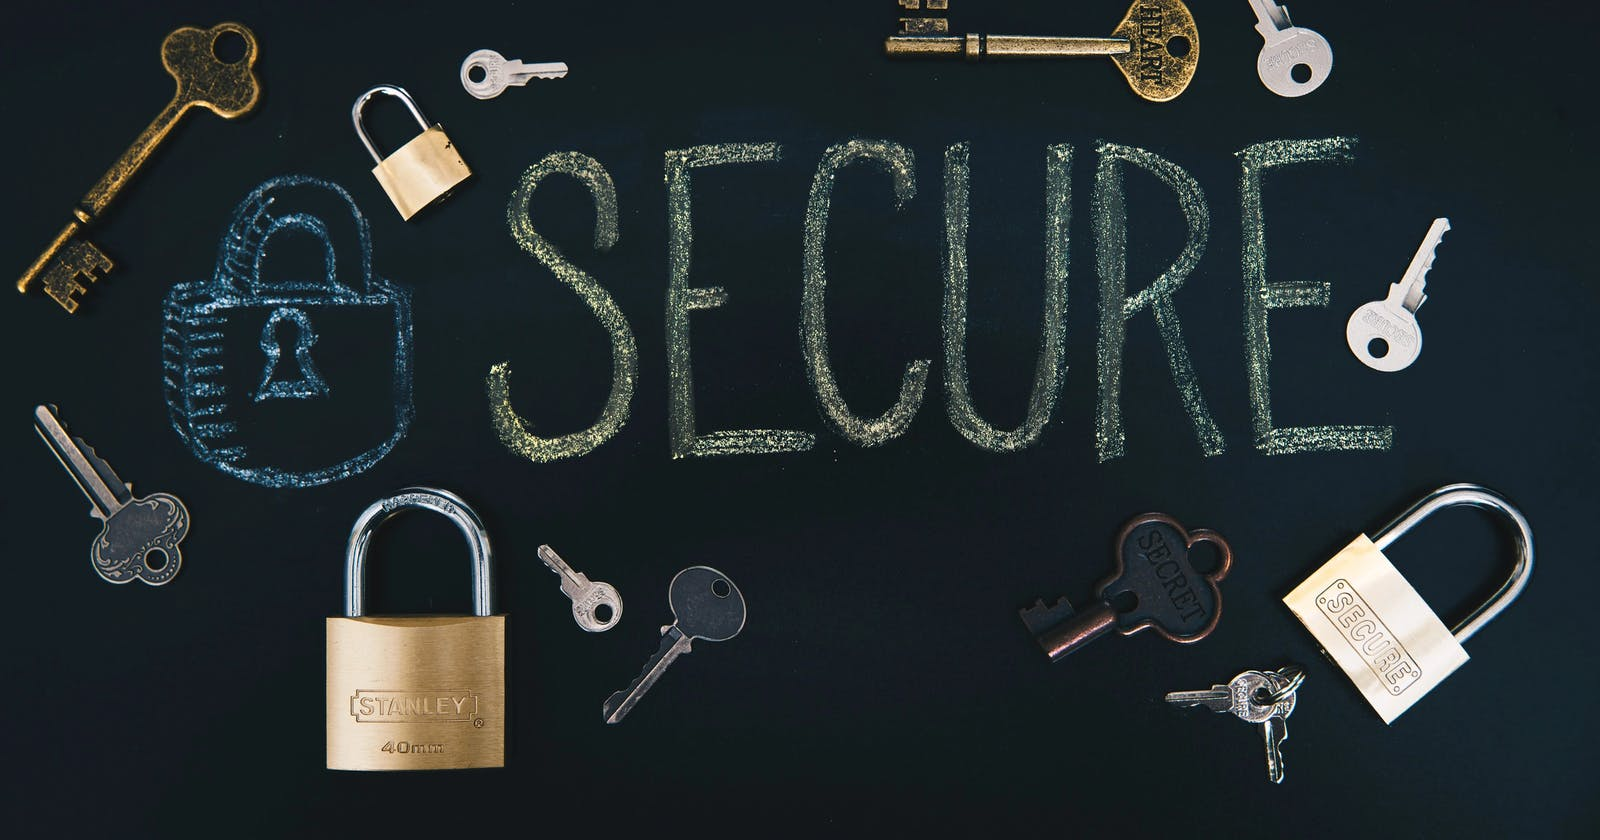 Revolutionizing Data Security by Design